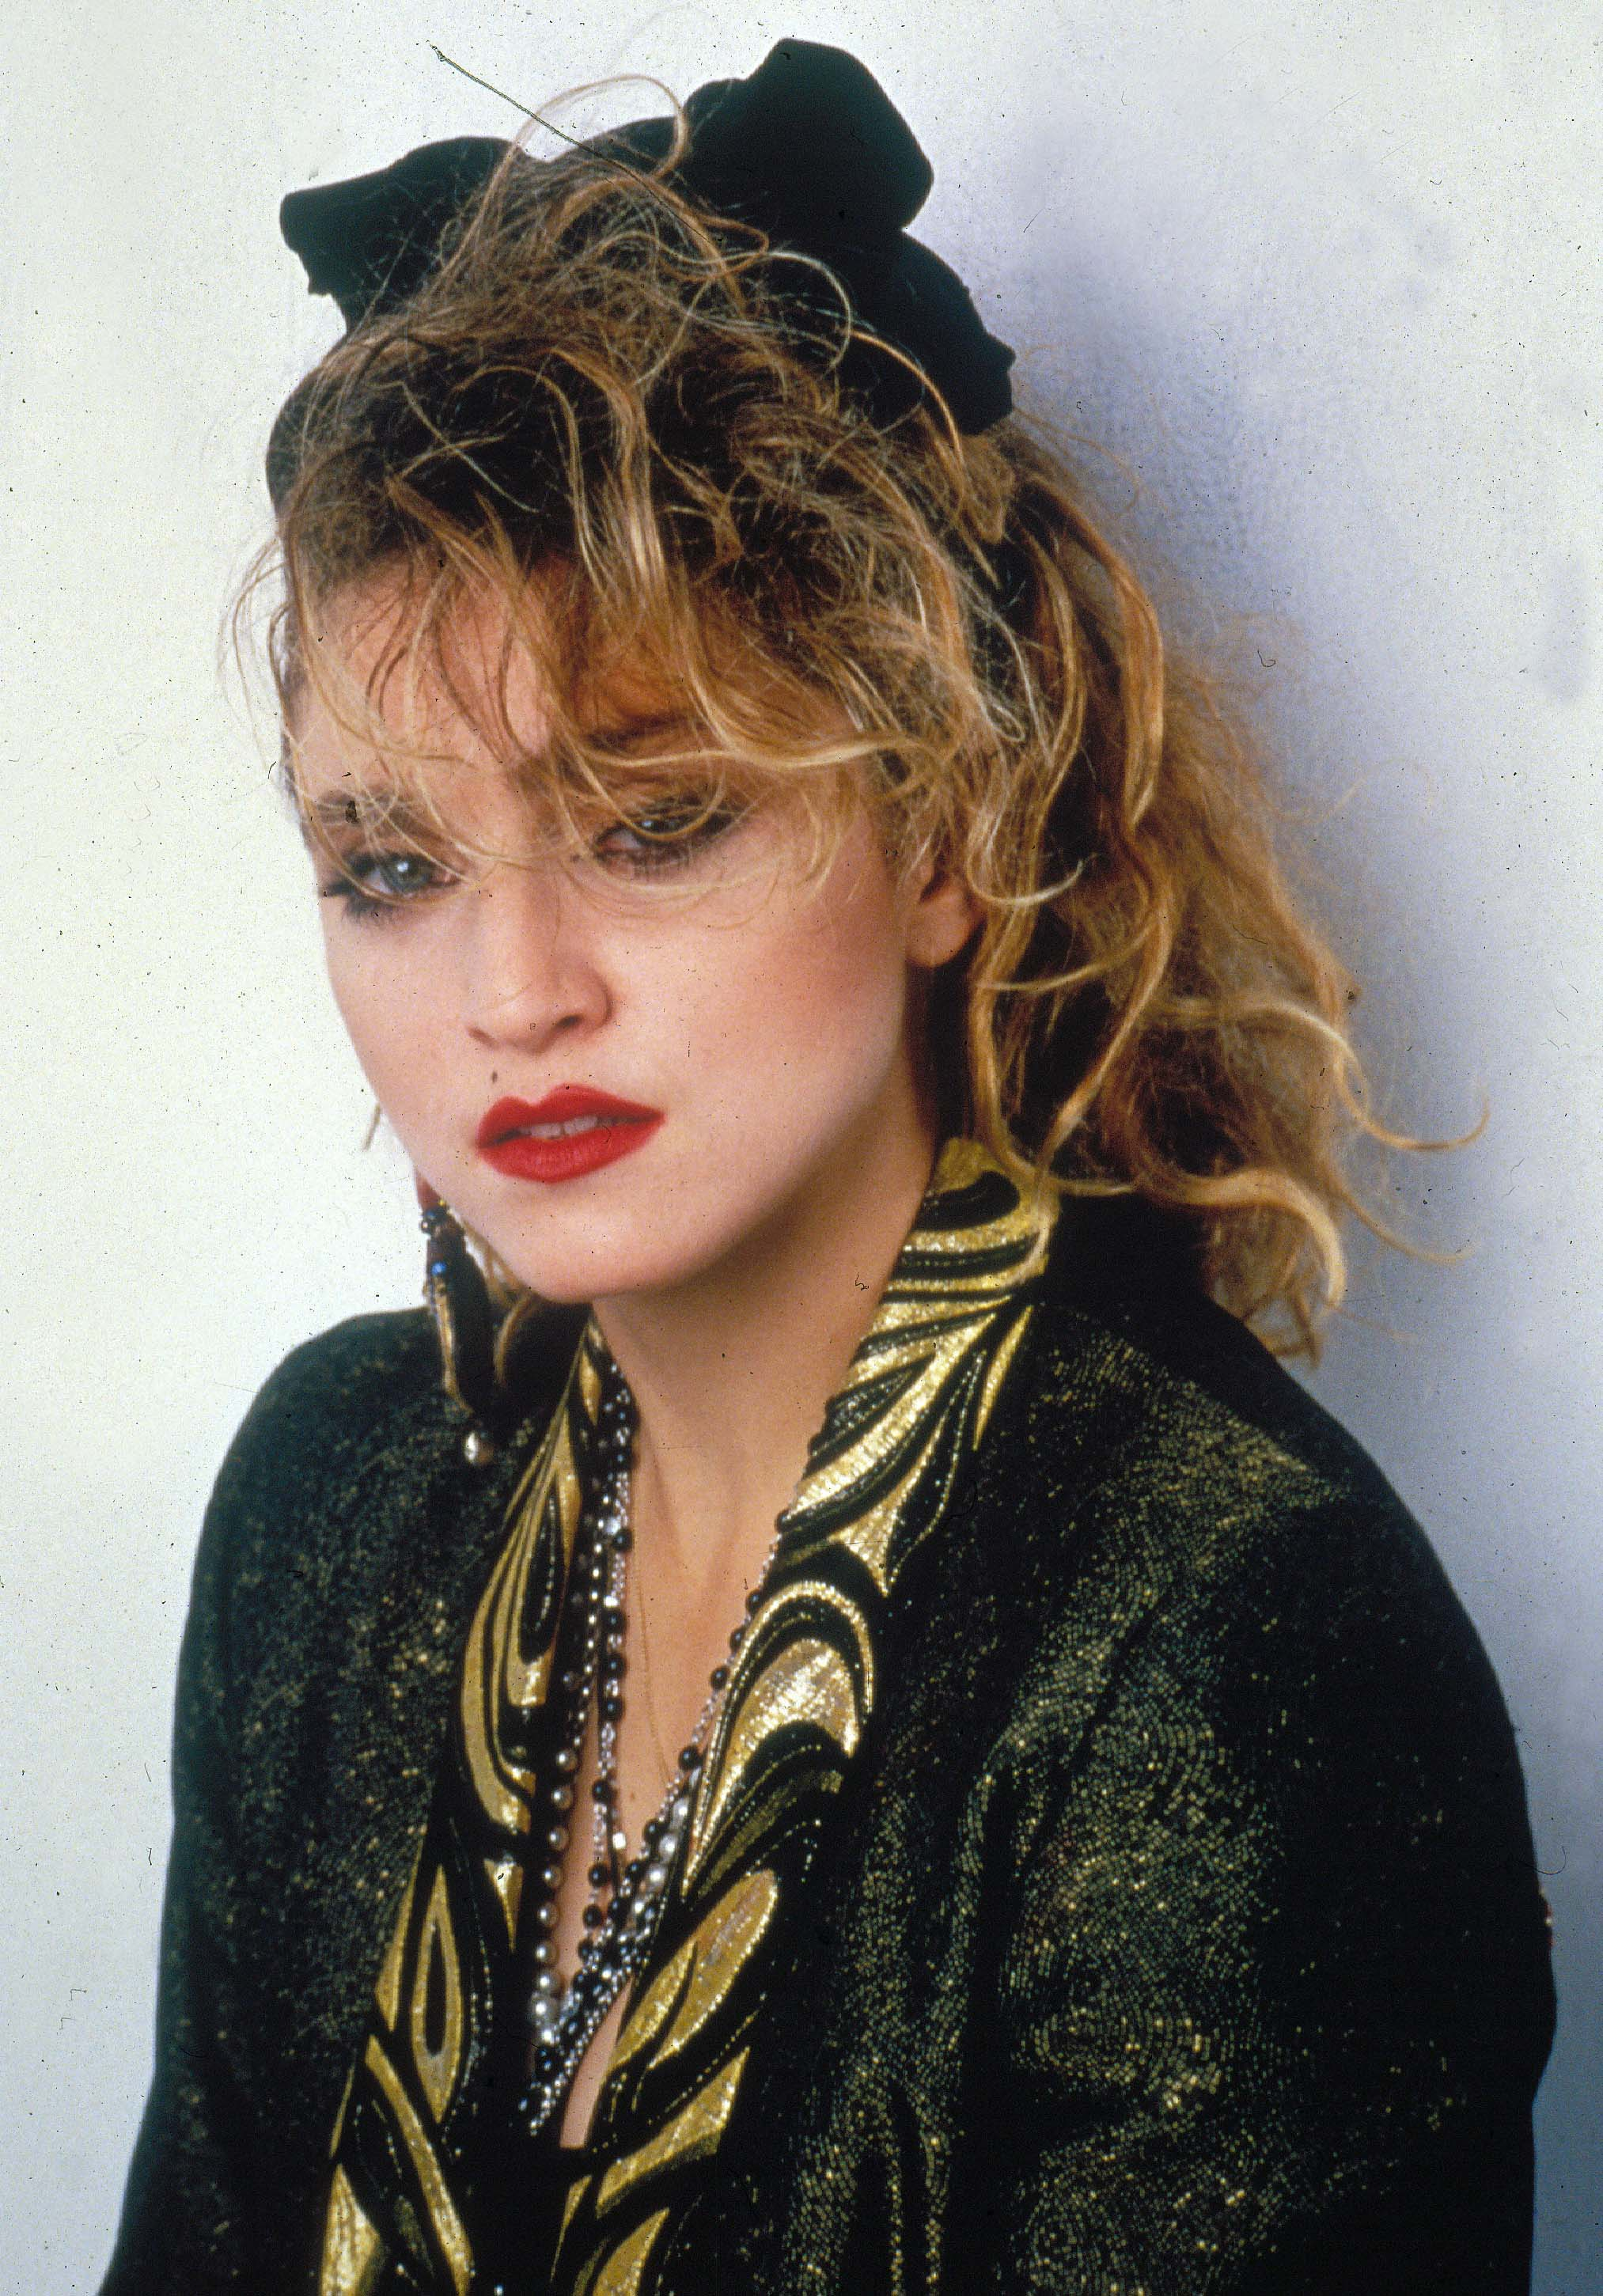 80s Hairstyles 23 Epic Looks Making A Huge Come Back